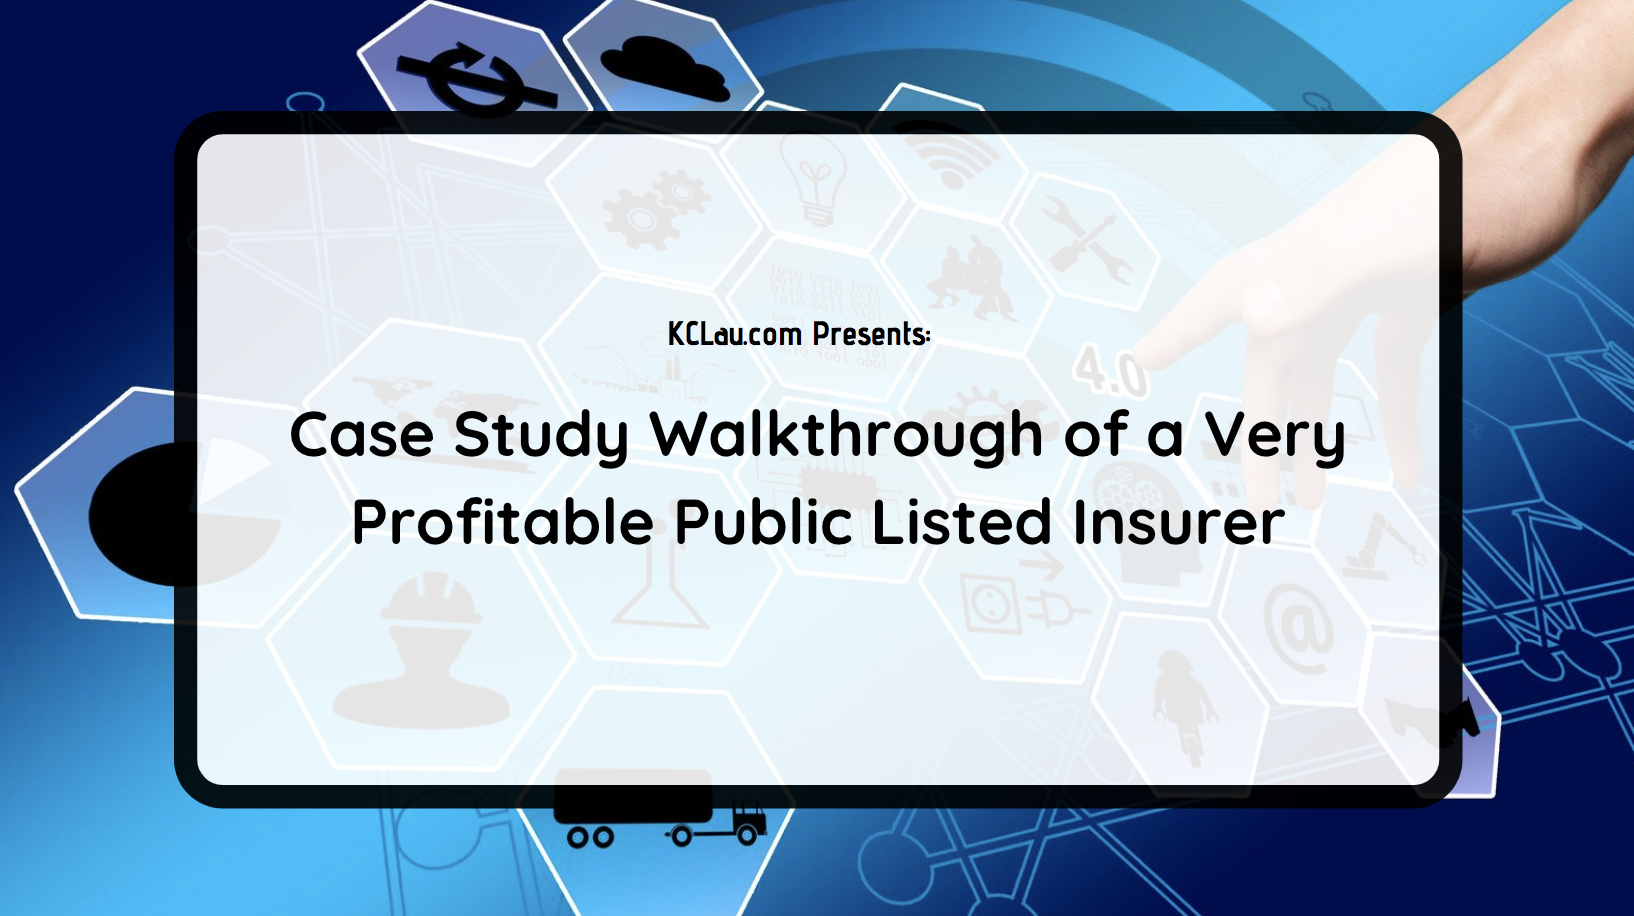 Case Study Walkthrough of a Very Profitable Public Listed Insurer [Ping An]